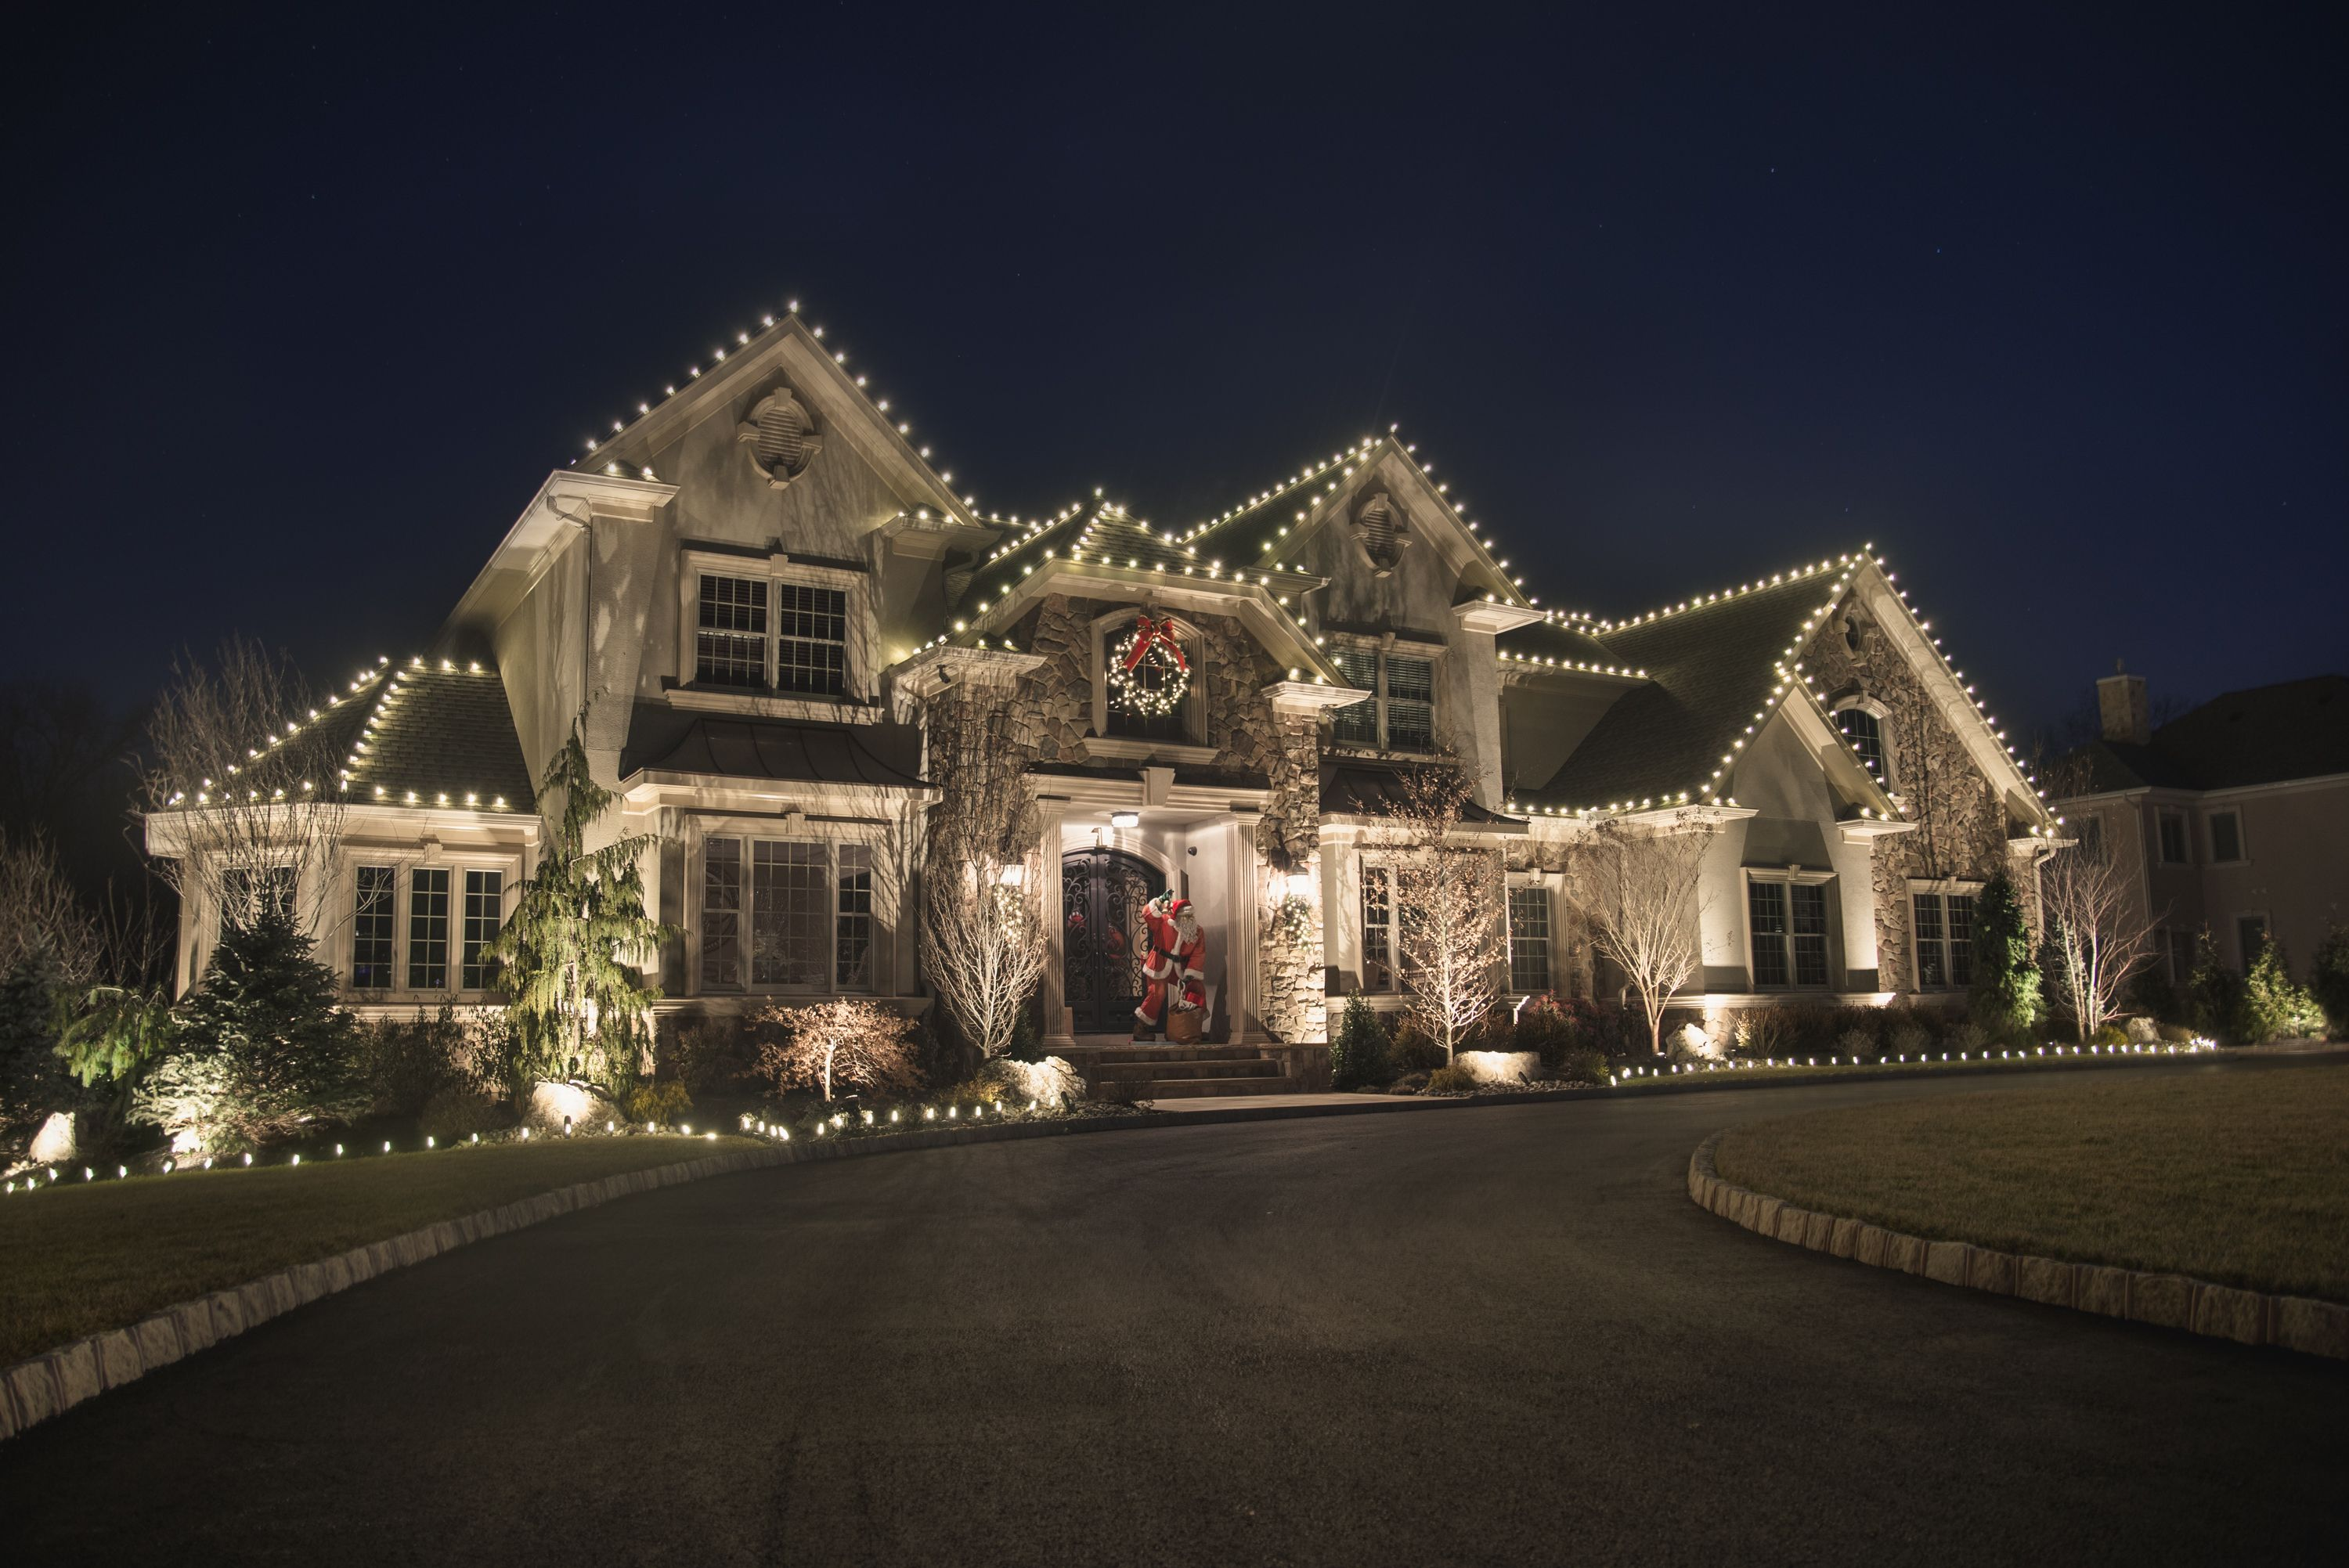 residential holiday decorating and christmas light service portfolio christmas decor - Residential Christmas Decorating Service